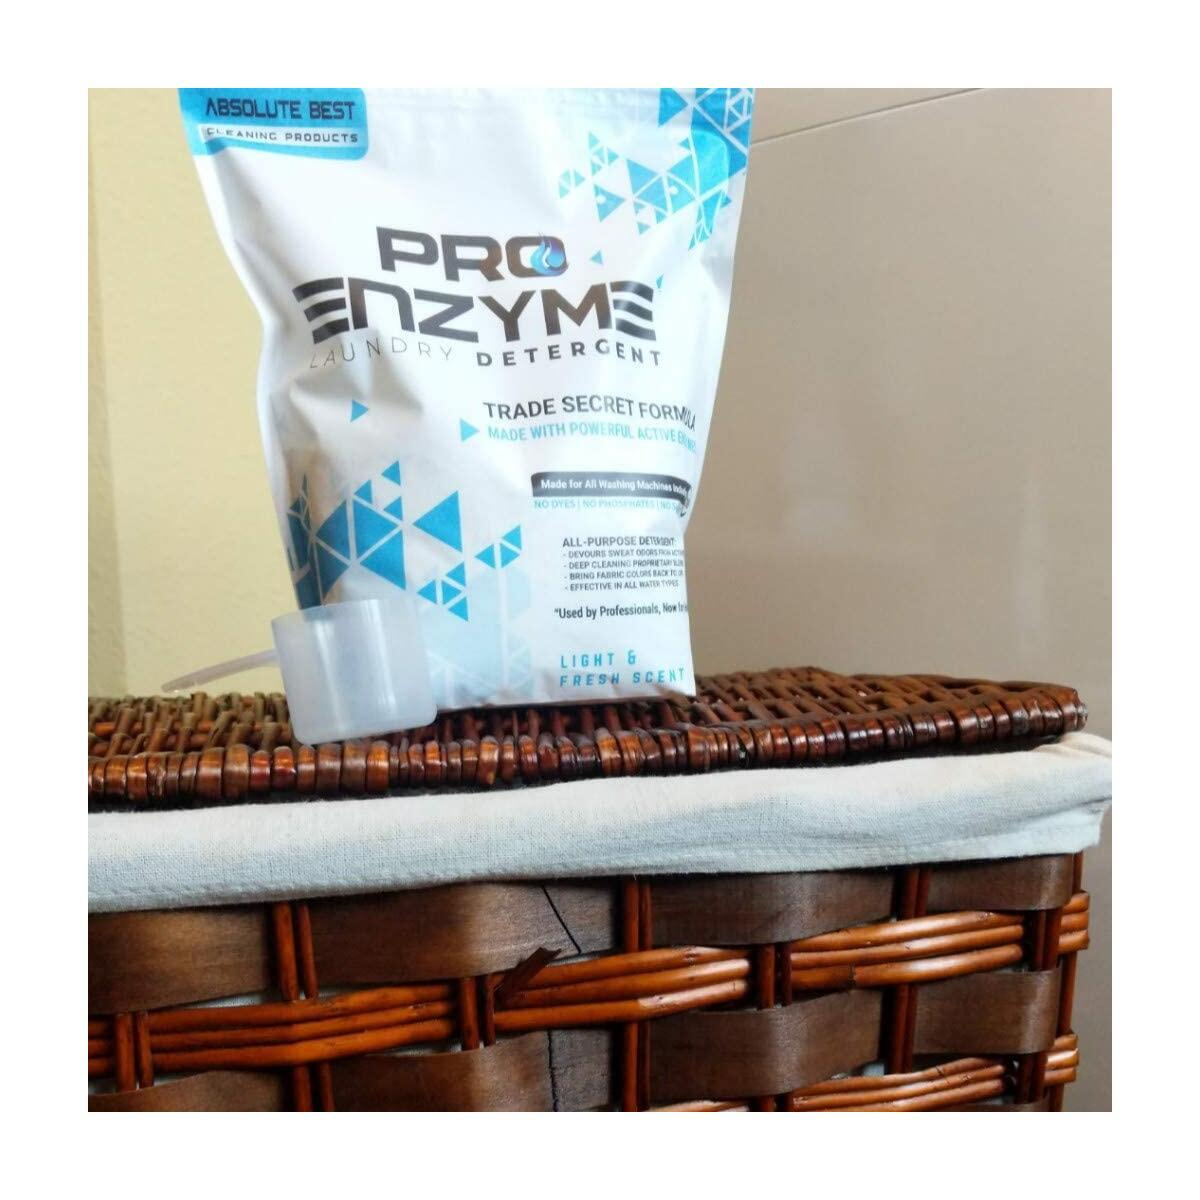 Pro Enzyme Laundry Detergent Powder Used by Professionals for Years